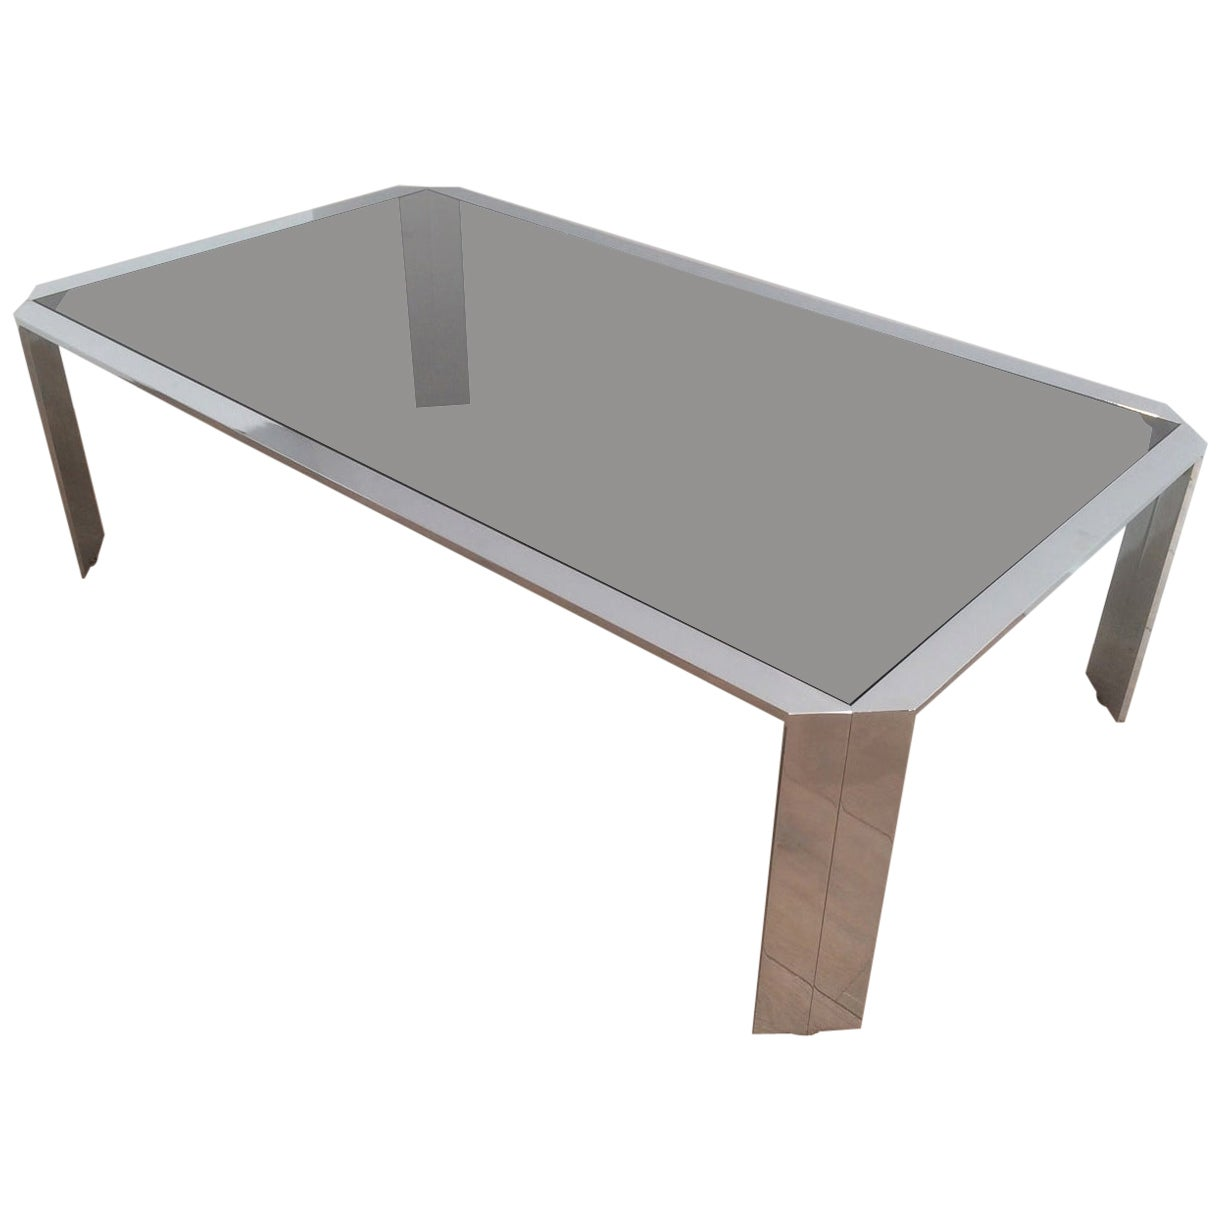 Nice Octagonal Chromed Coffee Table with Black Glass Top, Very Good Quality